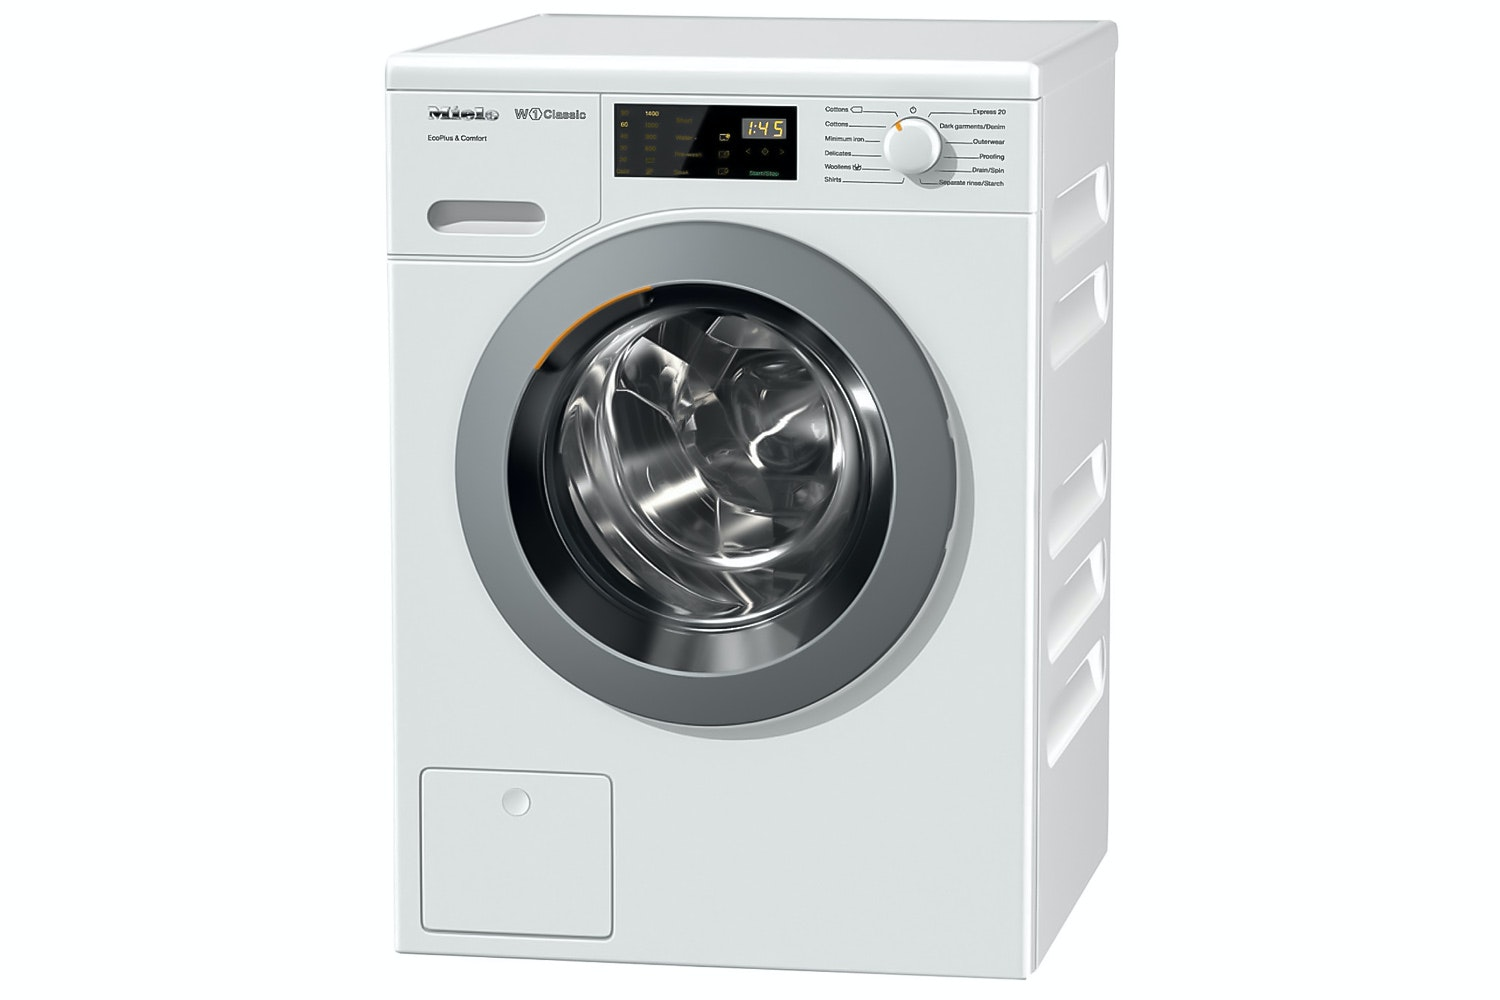 Miele WDD020 EcoPlus&Comfort  W1 Classic front-loading washing machine   for 1-8 kg of laundry - Miele quality and efficiency at an attractive price